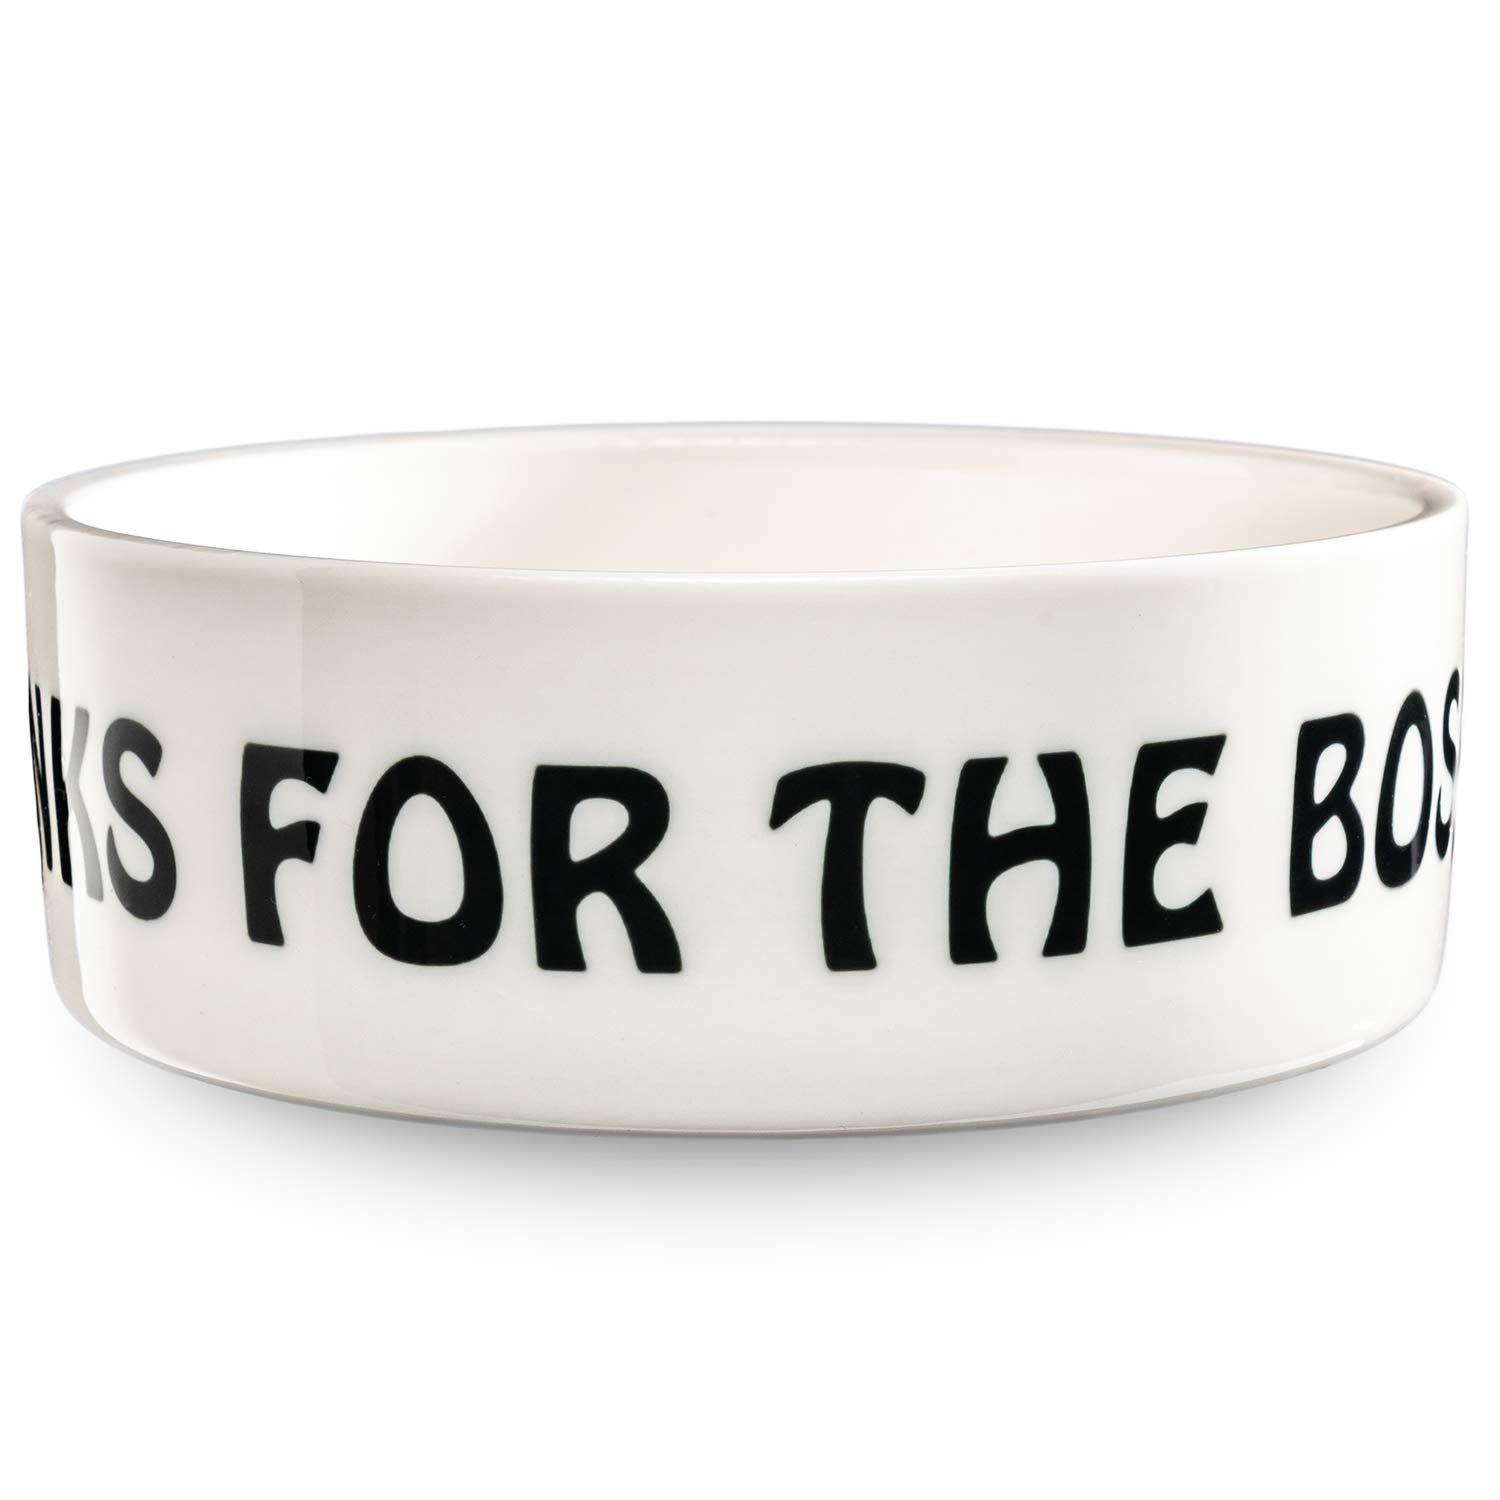 Drinks for the Boss pet bowl in white by Beau Tyler